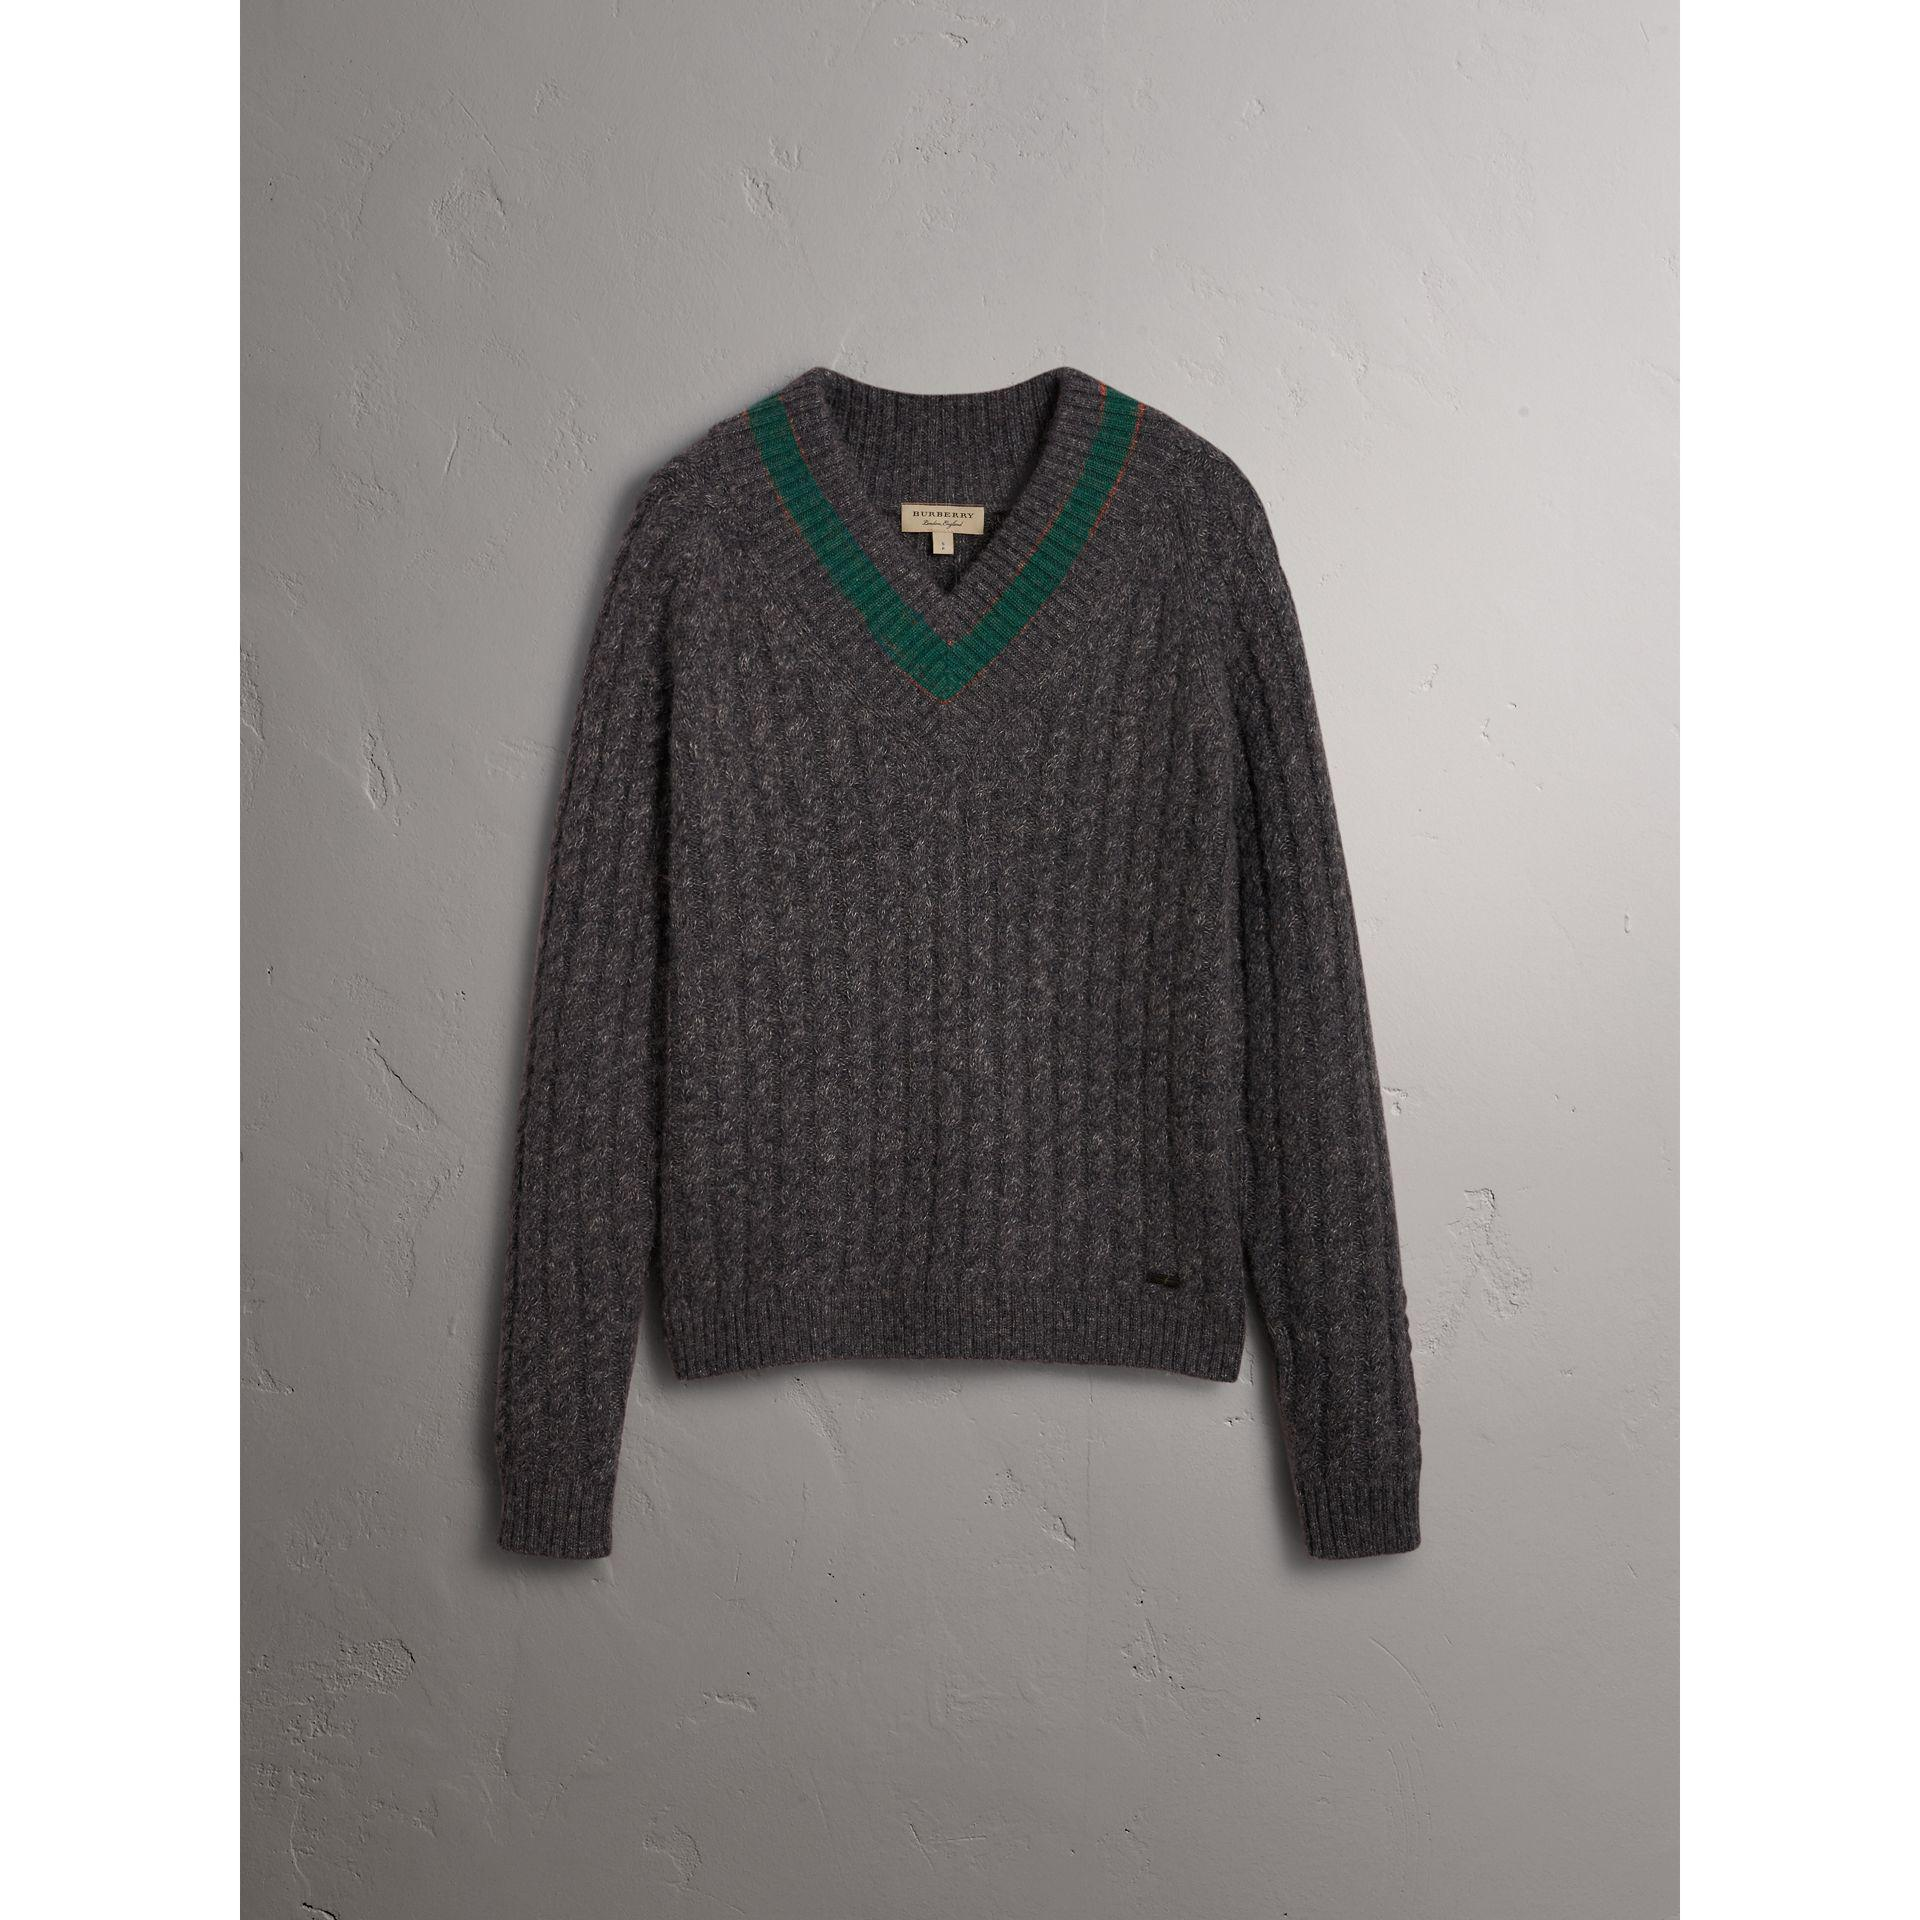 Burberry Cashmere Blend Cricket Sweater in Charcoal (Grey) for Men